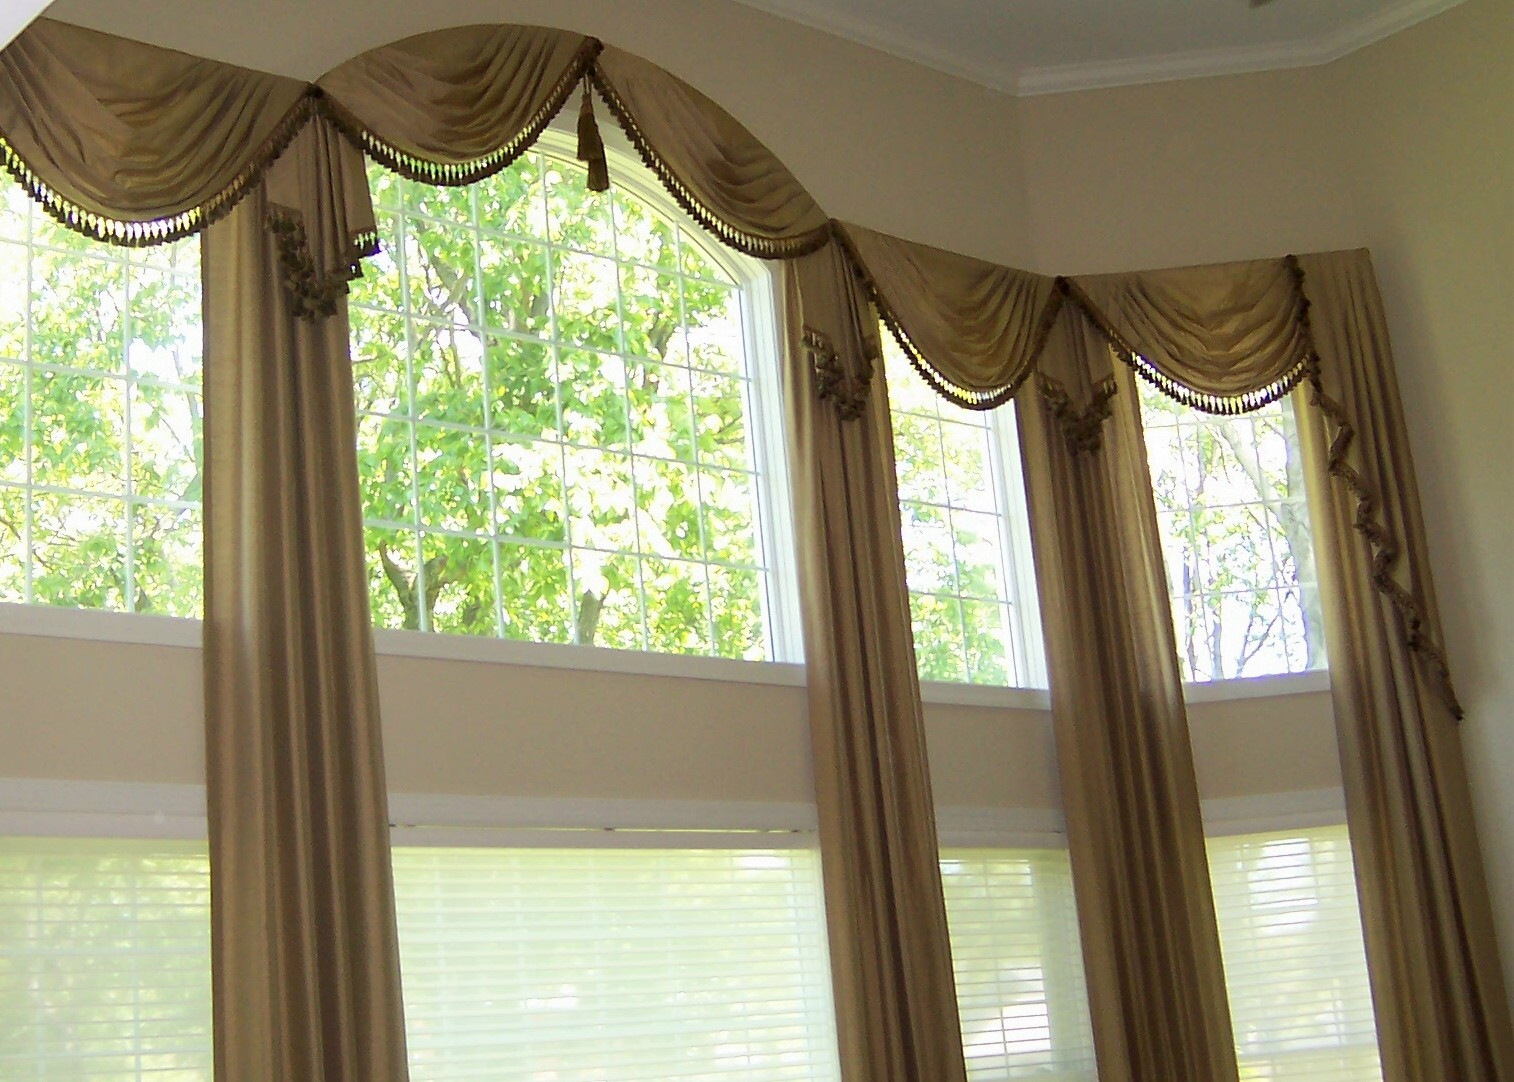 Window Drapes | Jcpenney Drapes | Jcpenney Window Treatments